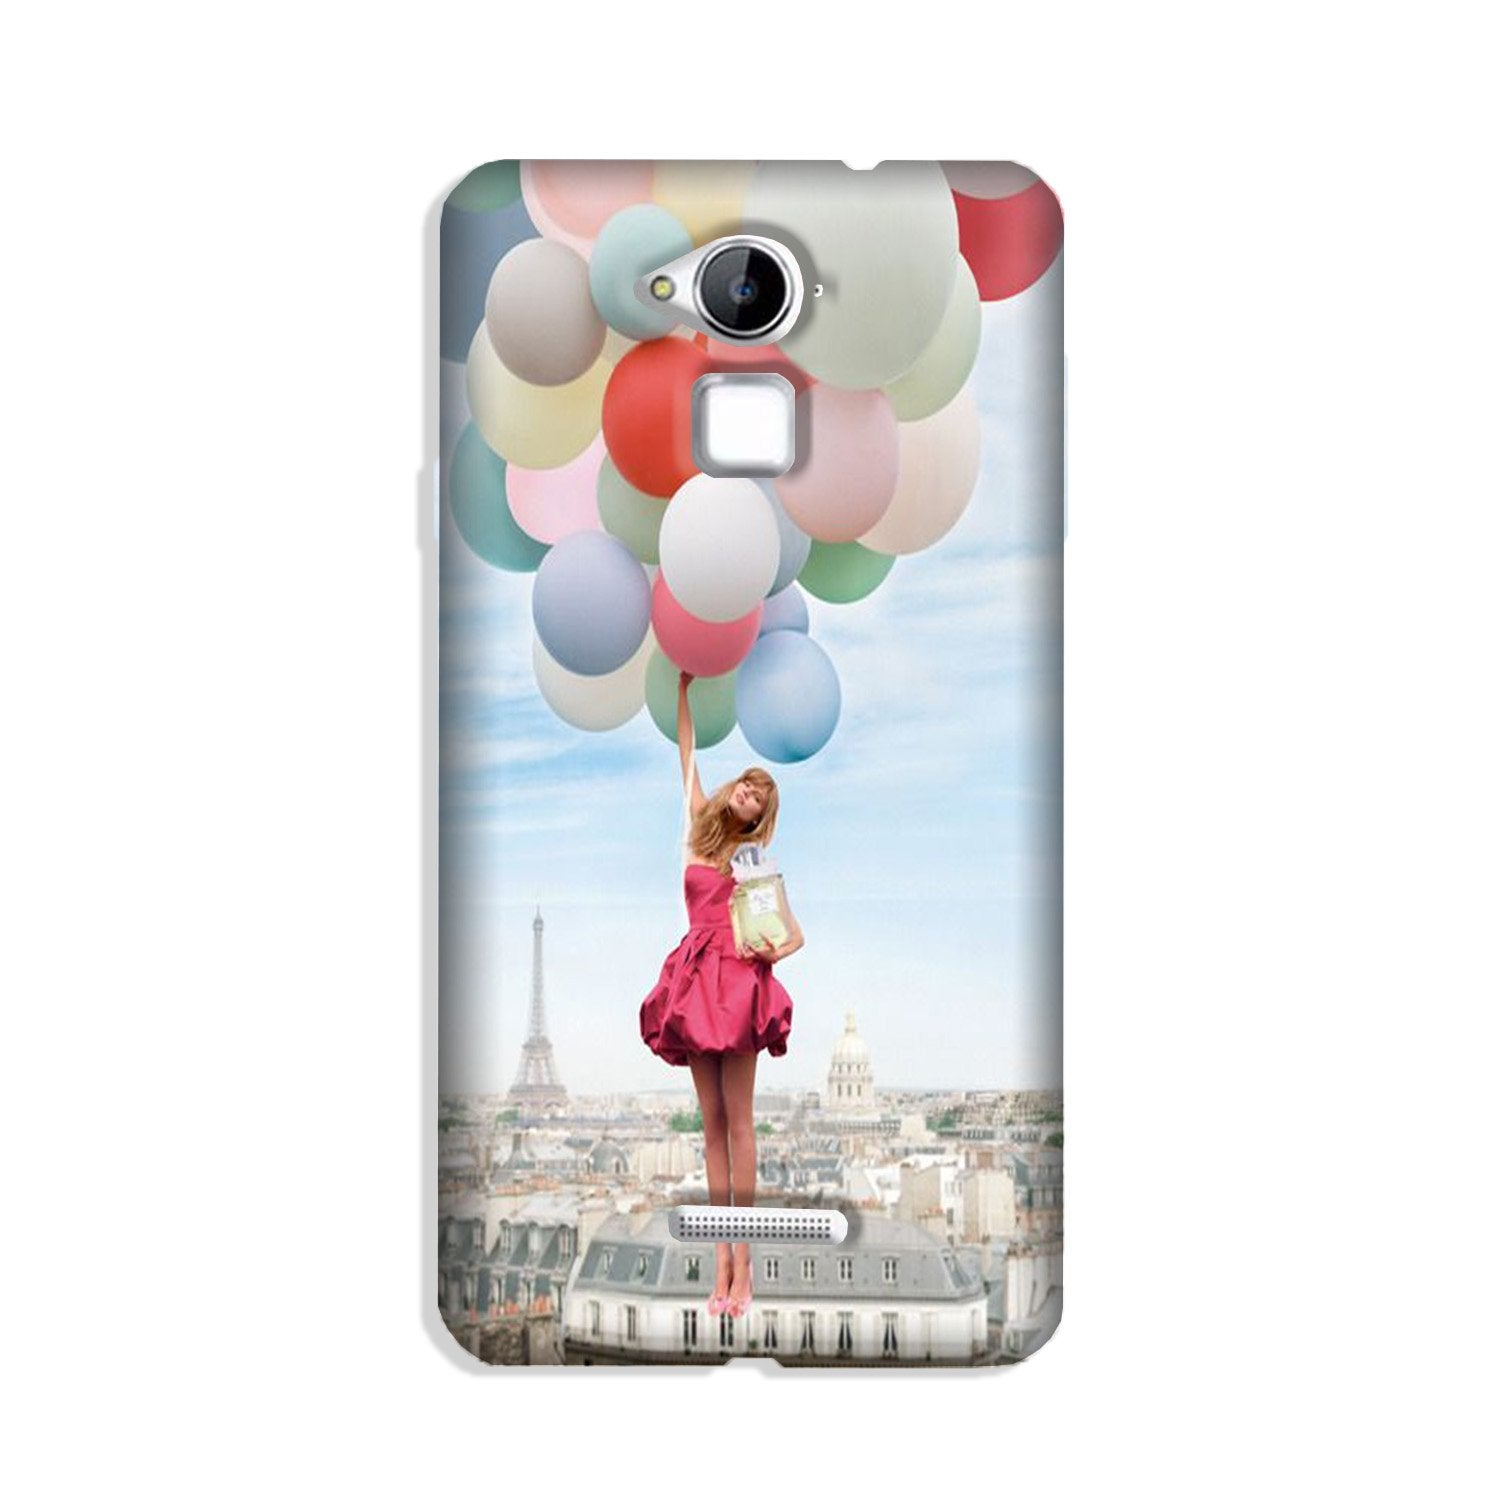 Girl with Baloon Case for Coolpad Note 3